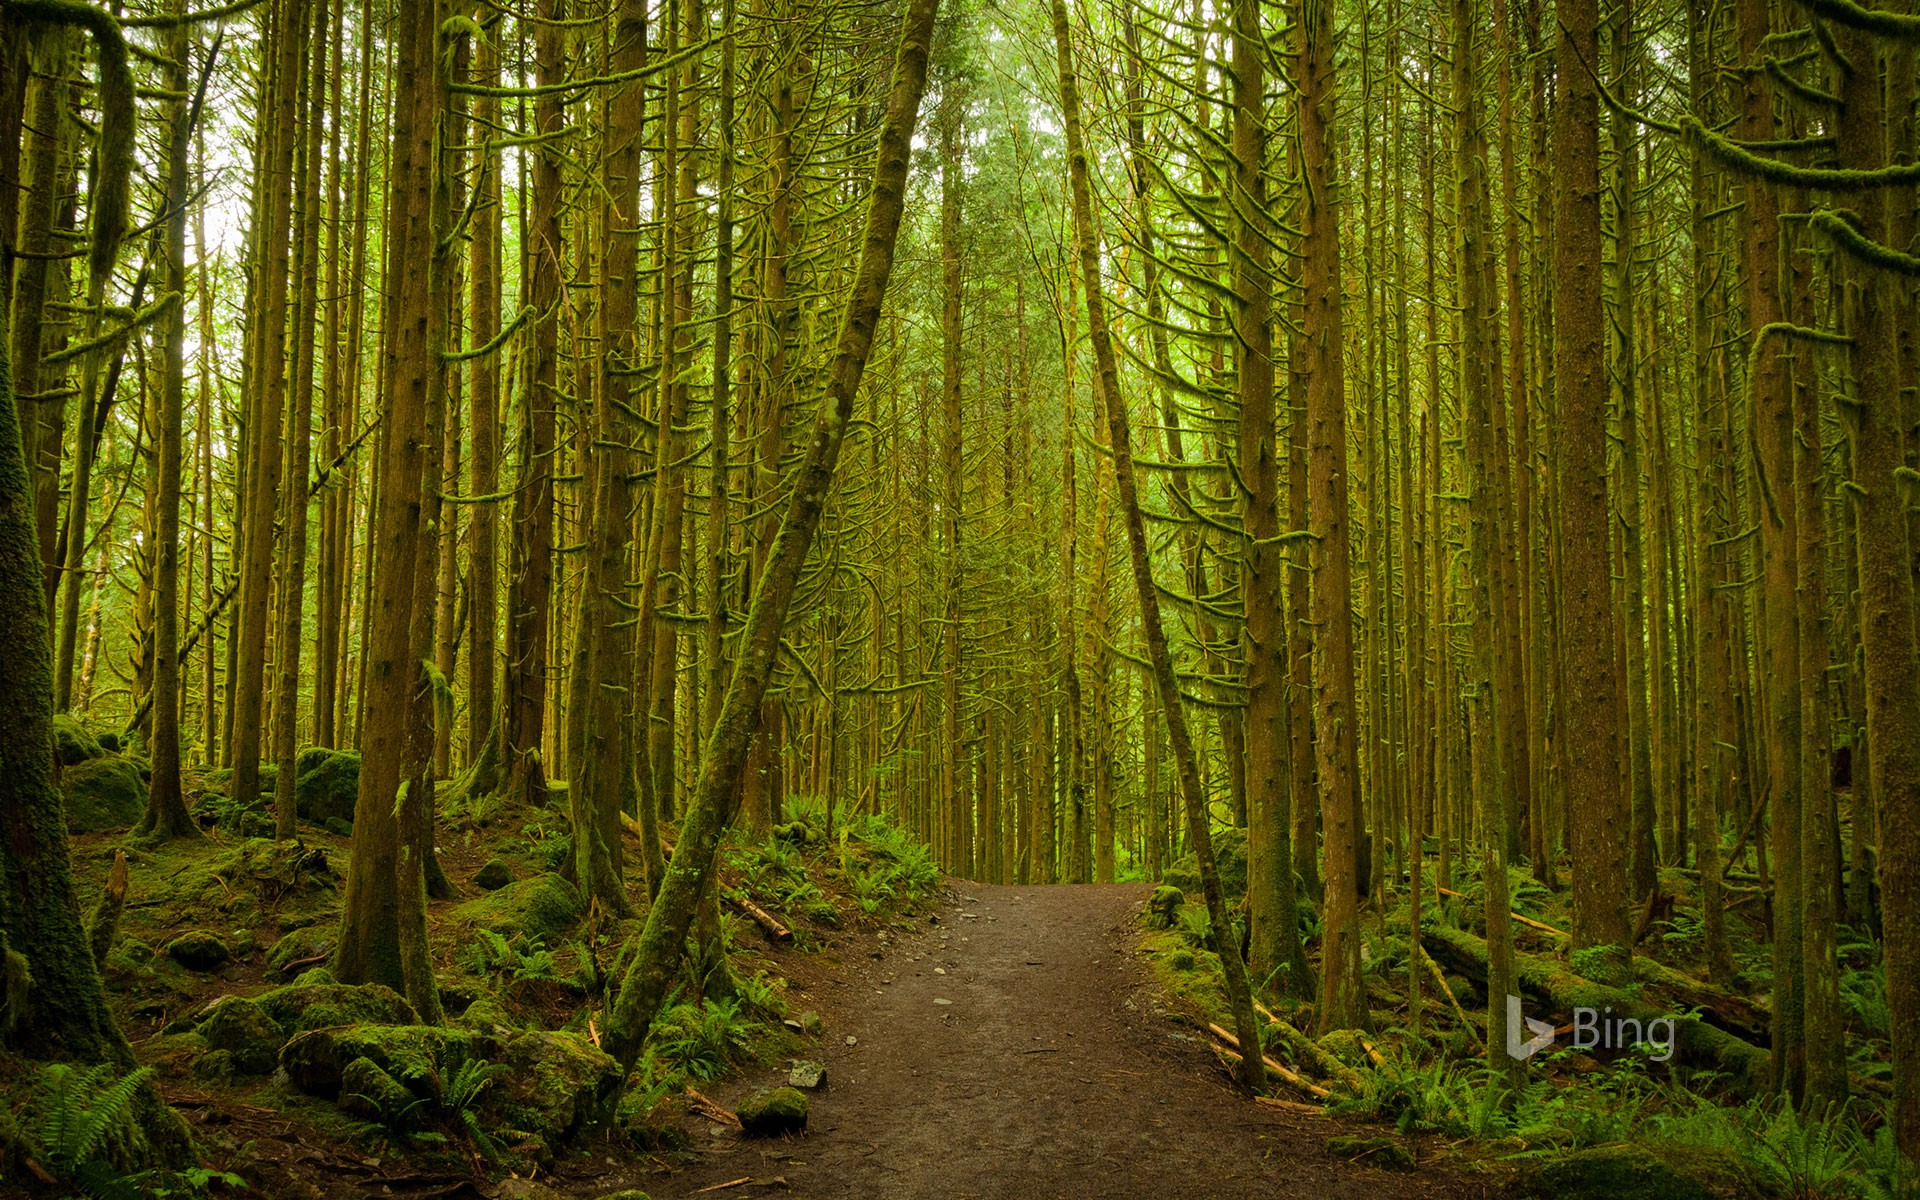 A pathway through the dense woodland forest at Golden Ears Provincial Park, B.C.